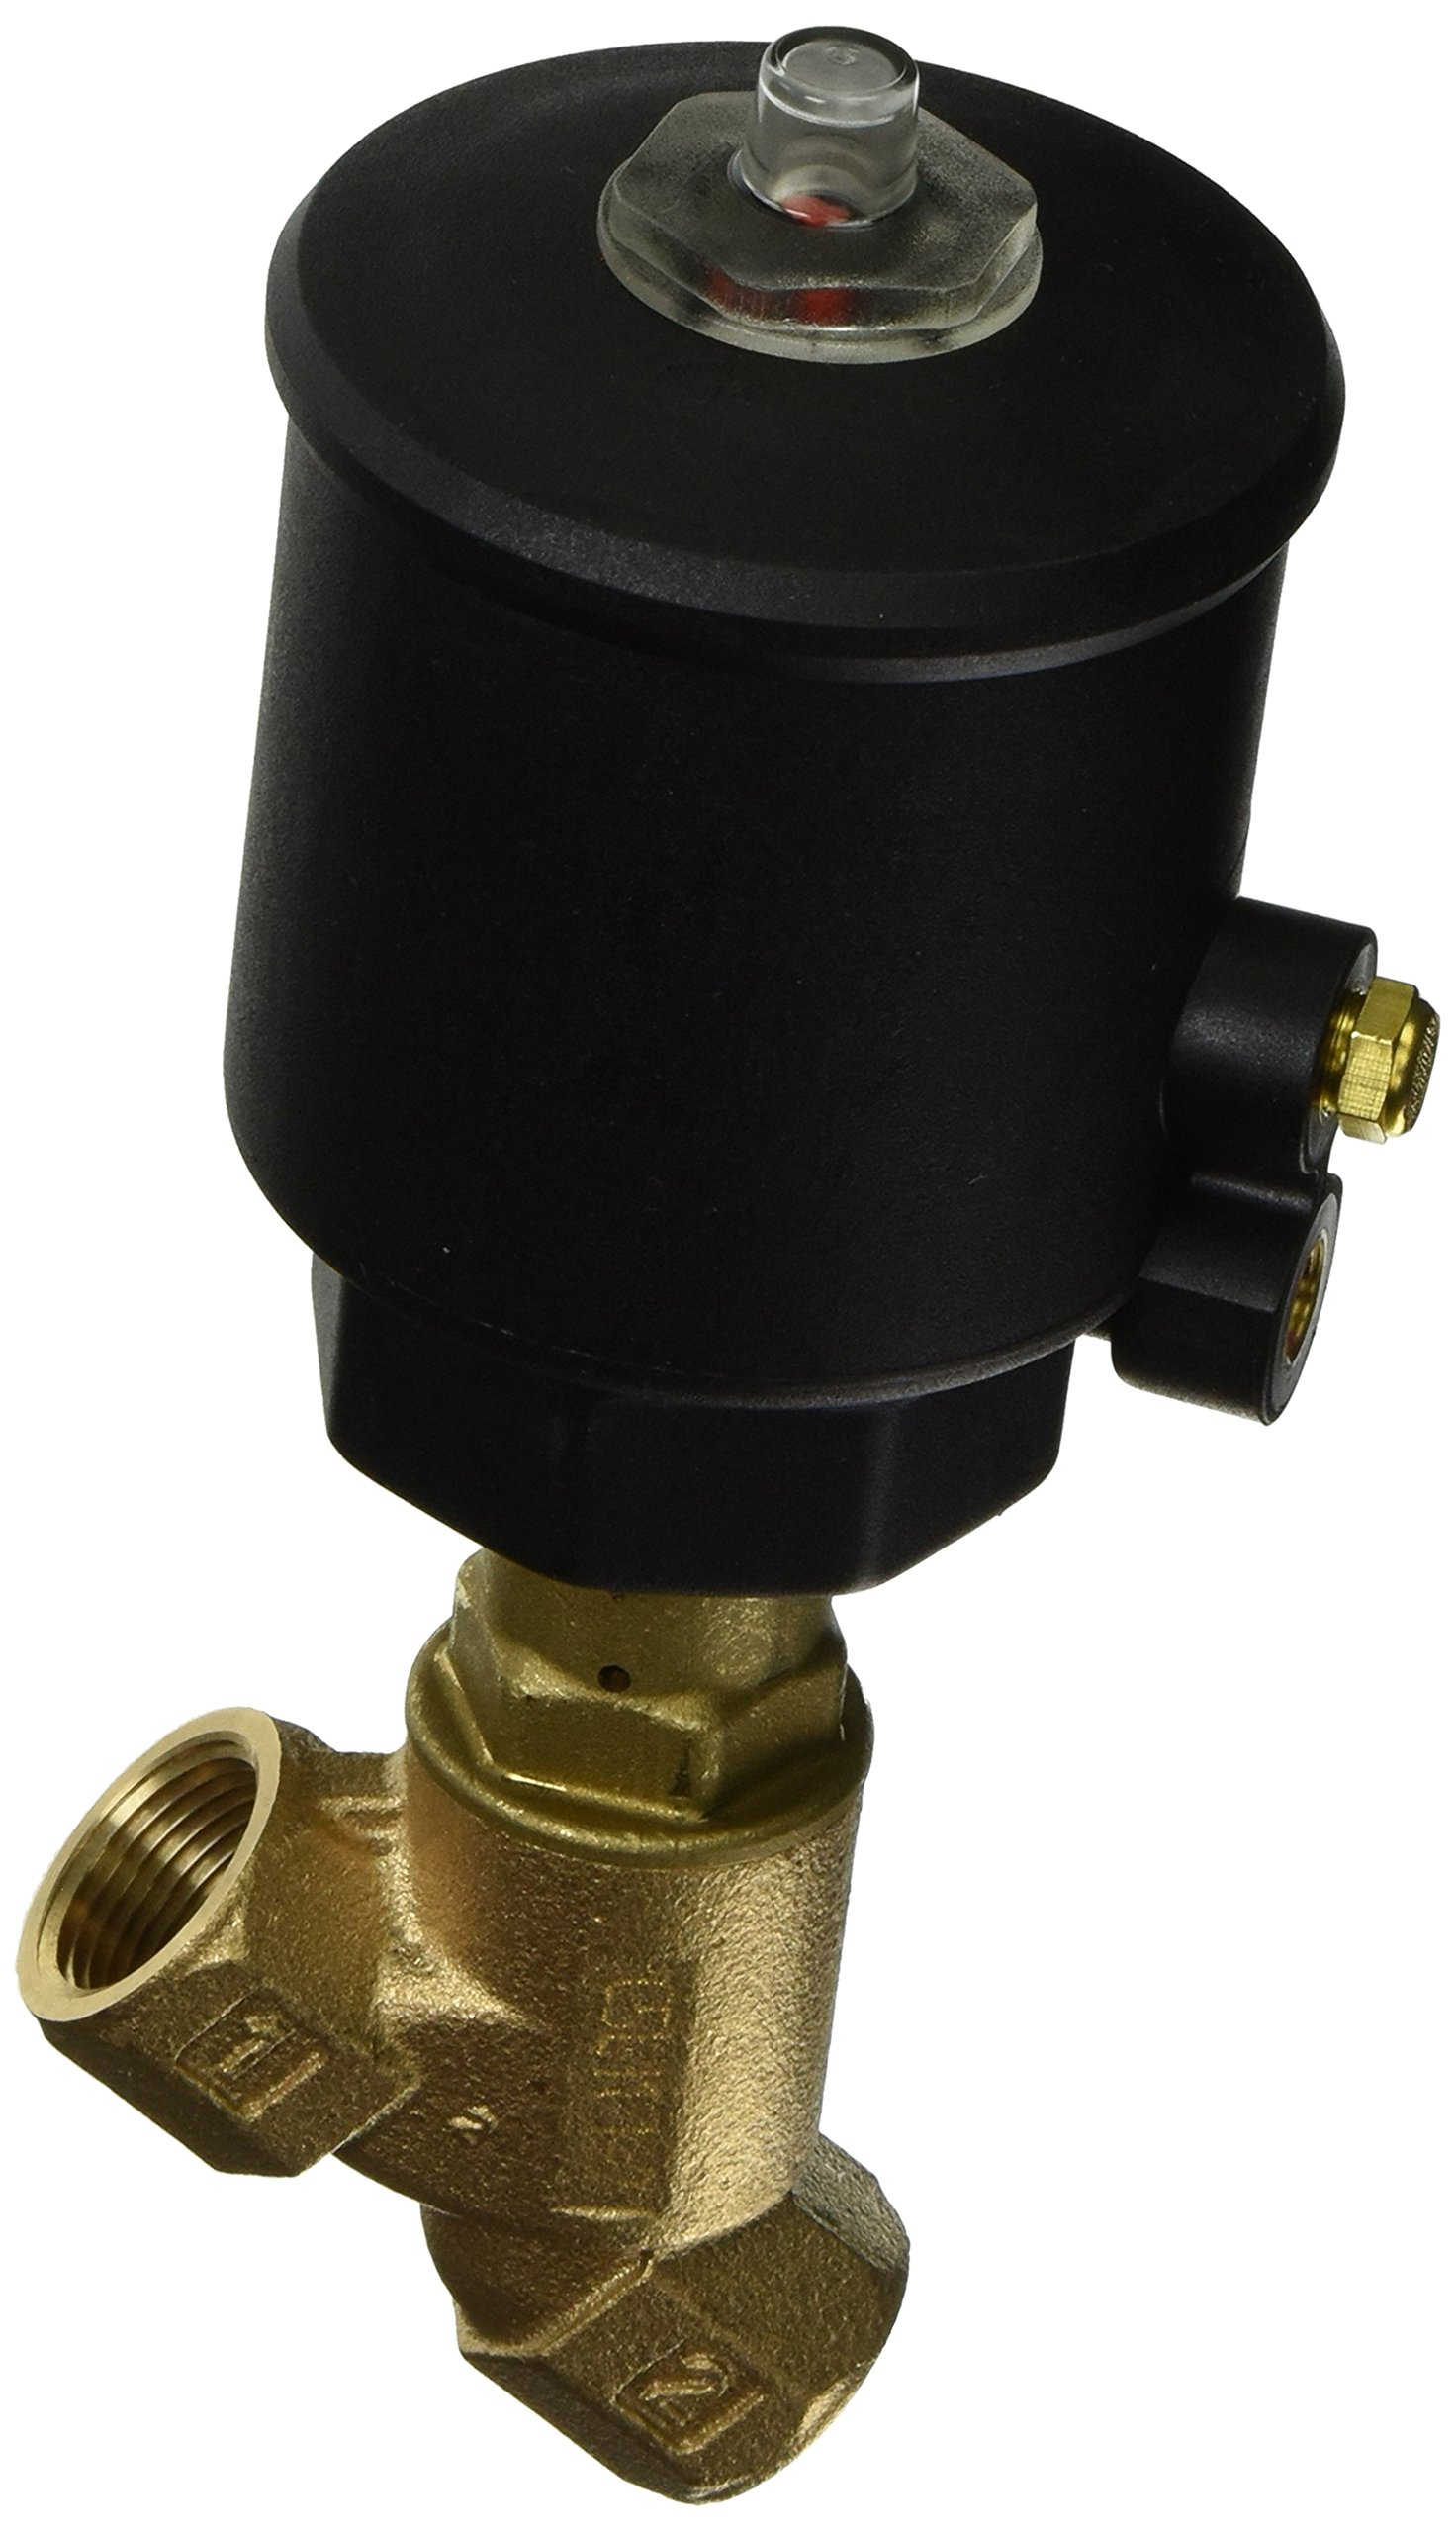 ASCO 8290B005 Bronze Body Air/Water Pilot Operated Angle Body Multi-Purpose Valve, 3/4'' Pipe Size, 2-Way Normally Closed, Entry Under the Disc, PTFE Sealing, 63 mm Valve Head Diameter, 3/4'' Orifice, 1